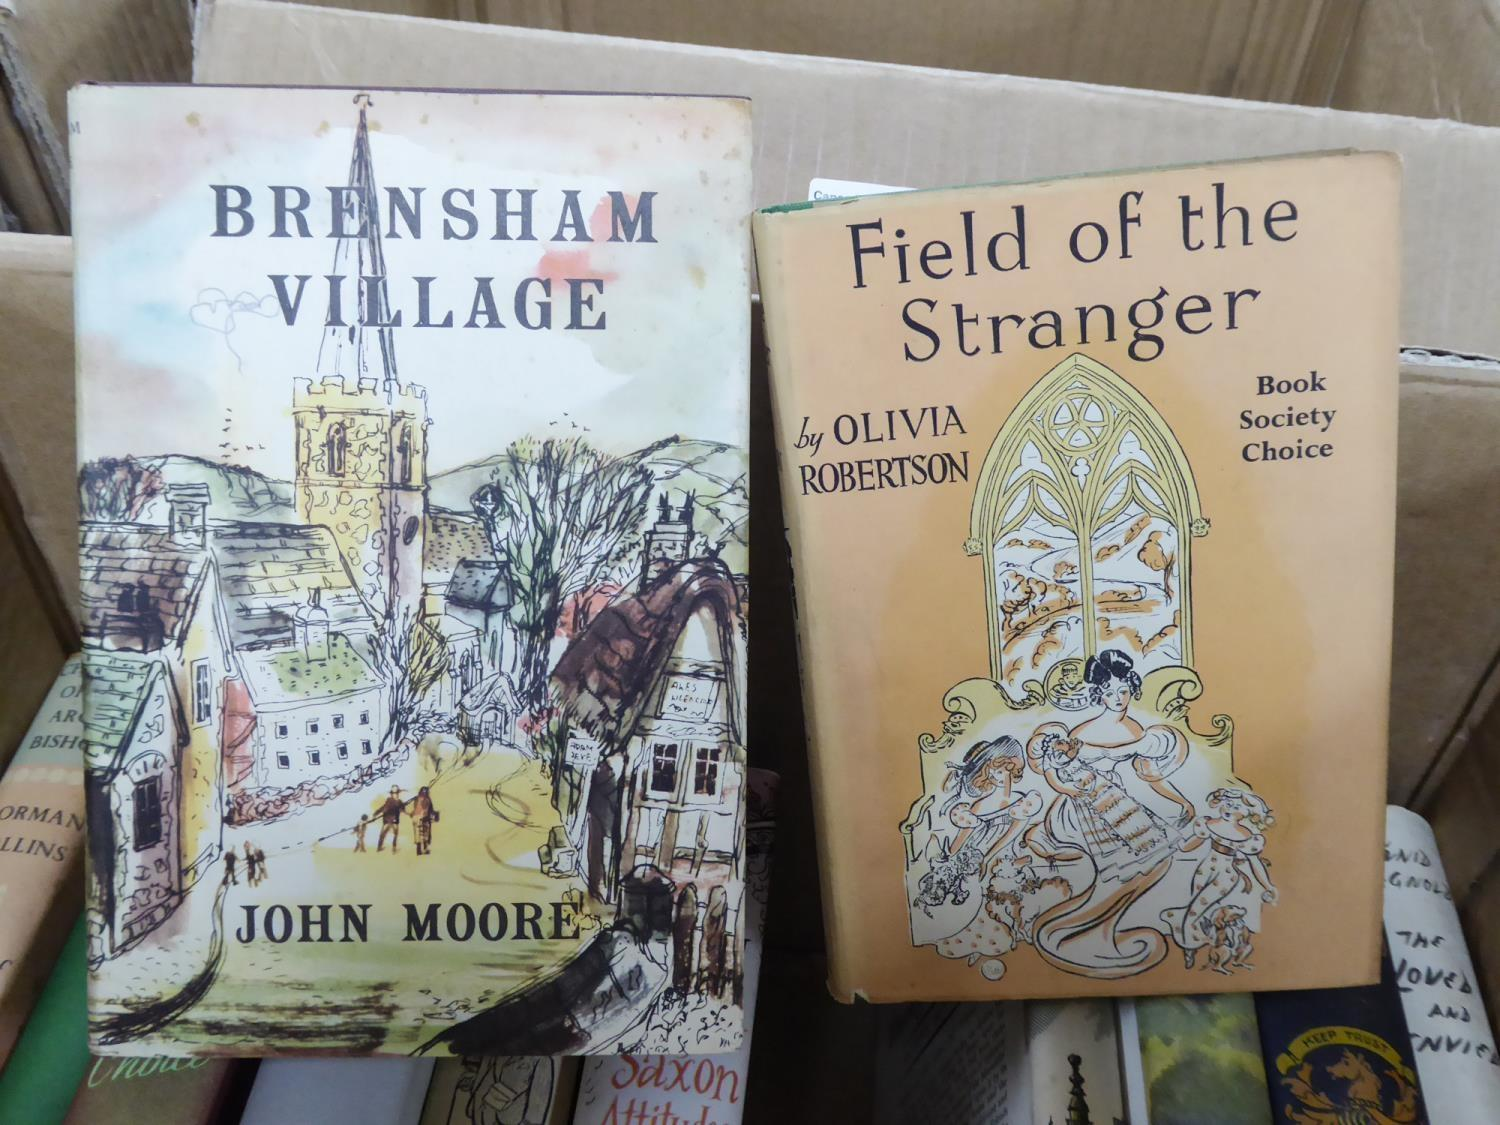 Lot 33 - SMALL SELECTION OF SIGNED MODERN FICTION TITLES, all in dust jackets, many 1st editions, to